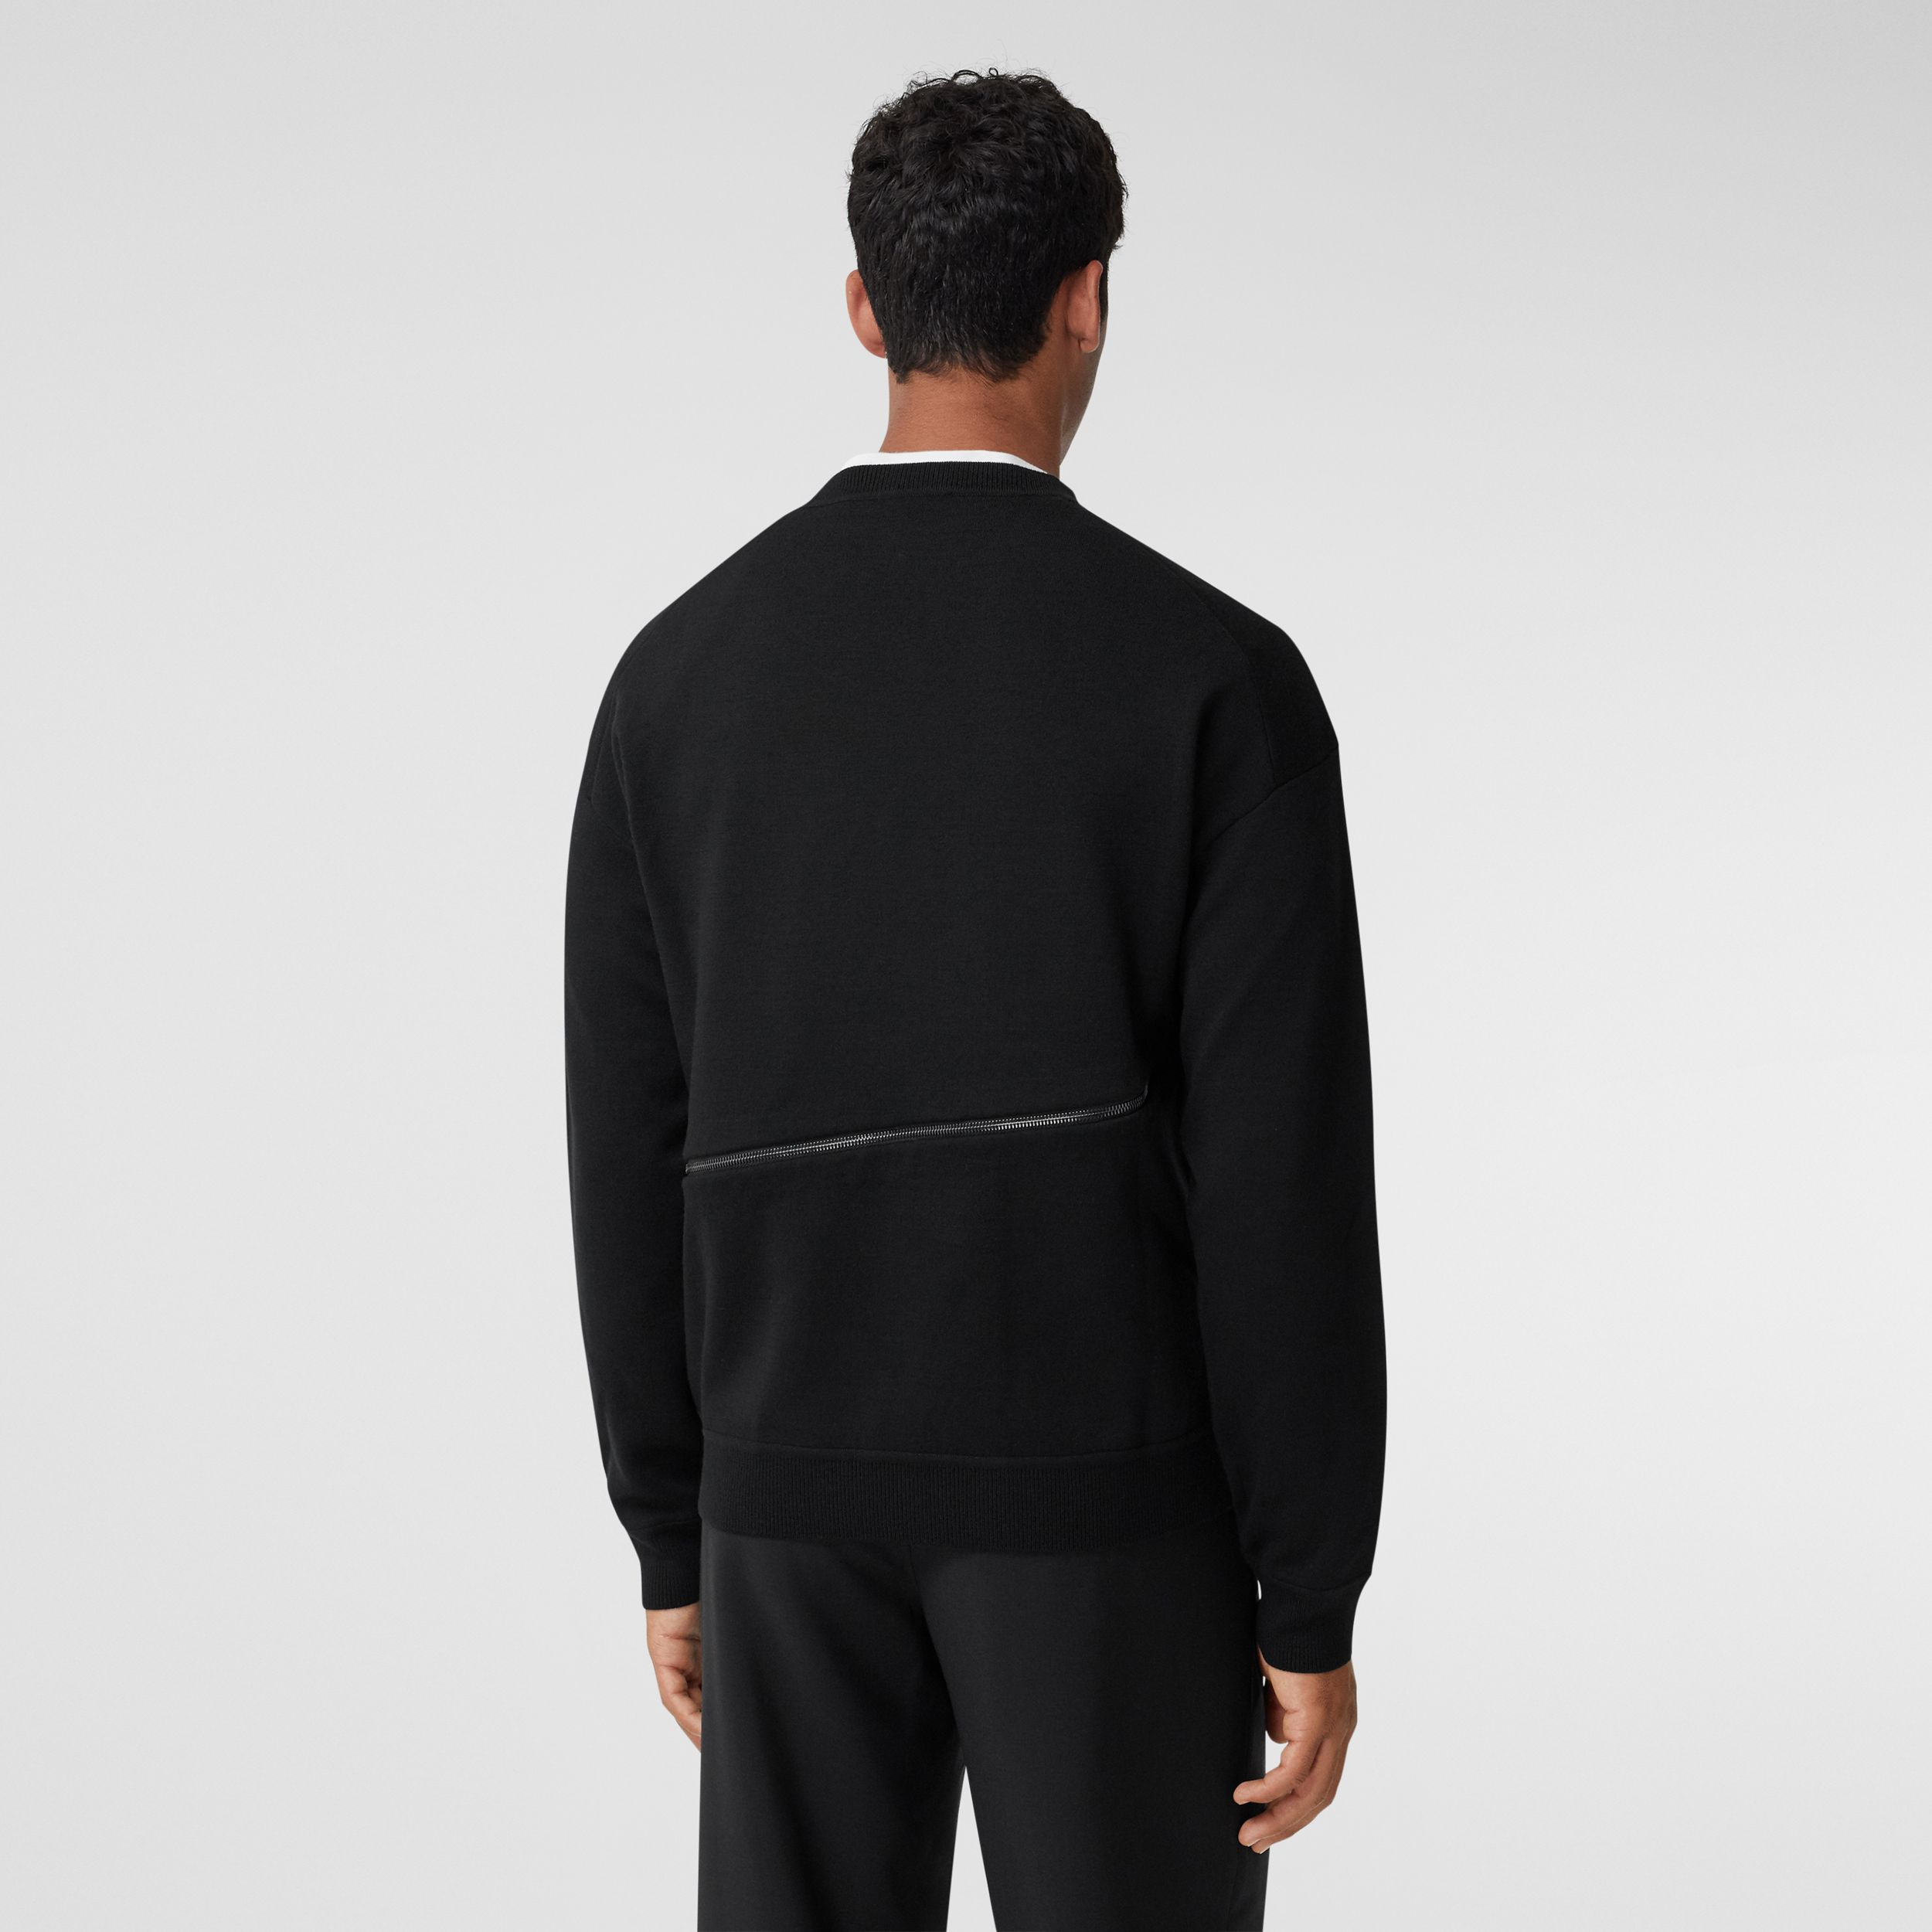 Monogram Motif Intarsia Merino Wool Blend Sweater in Black - Men | Burberry - 2